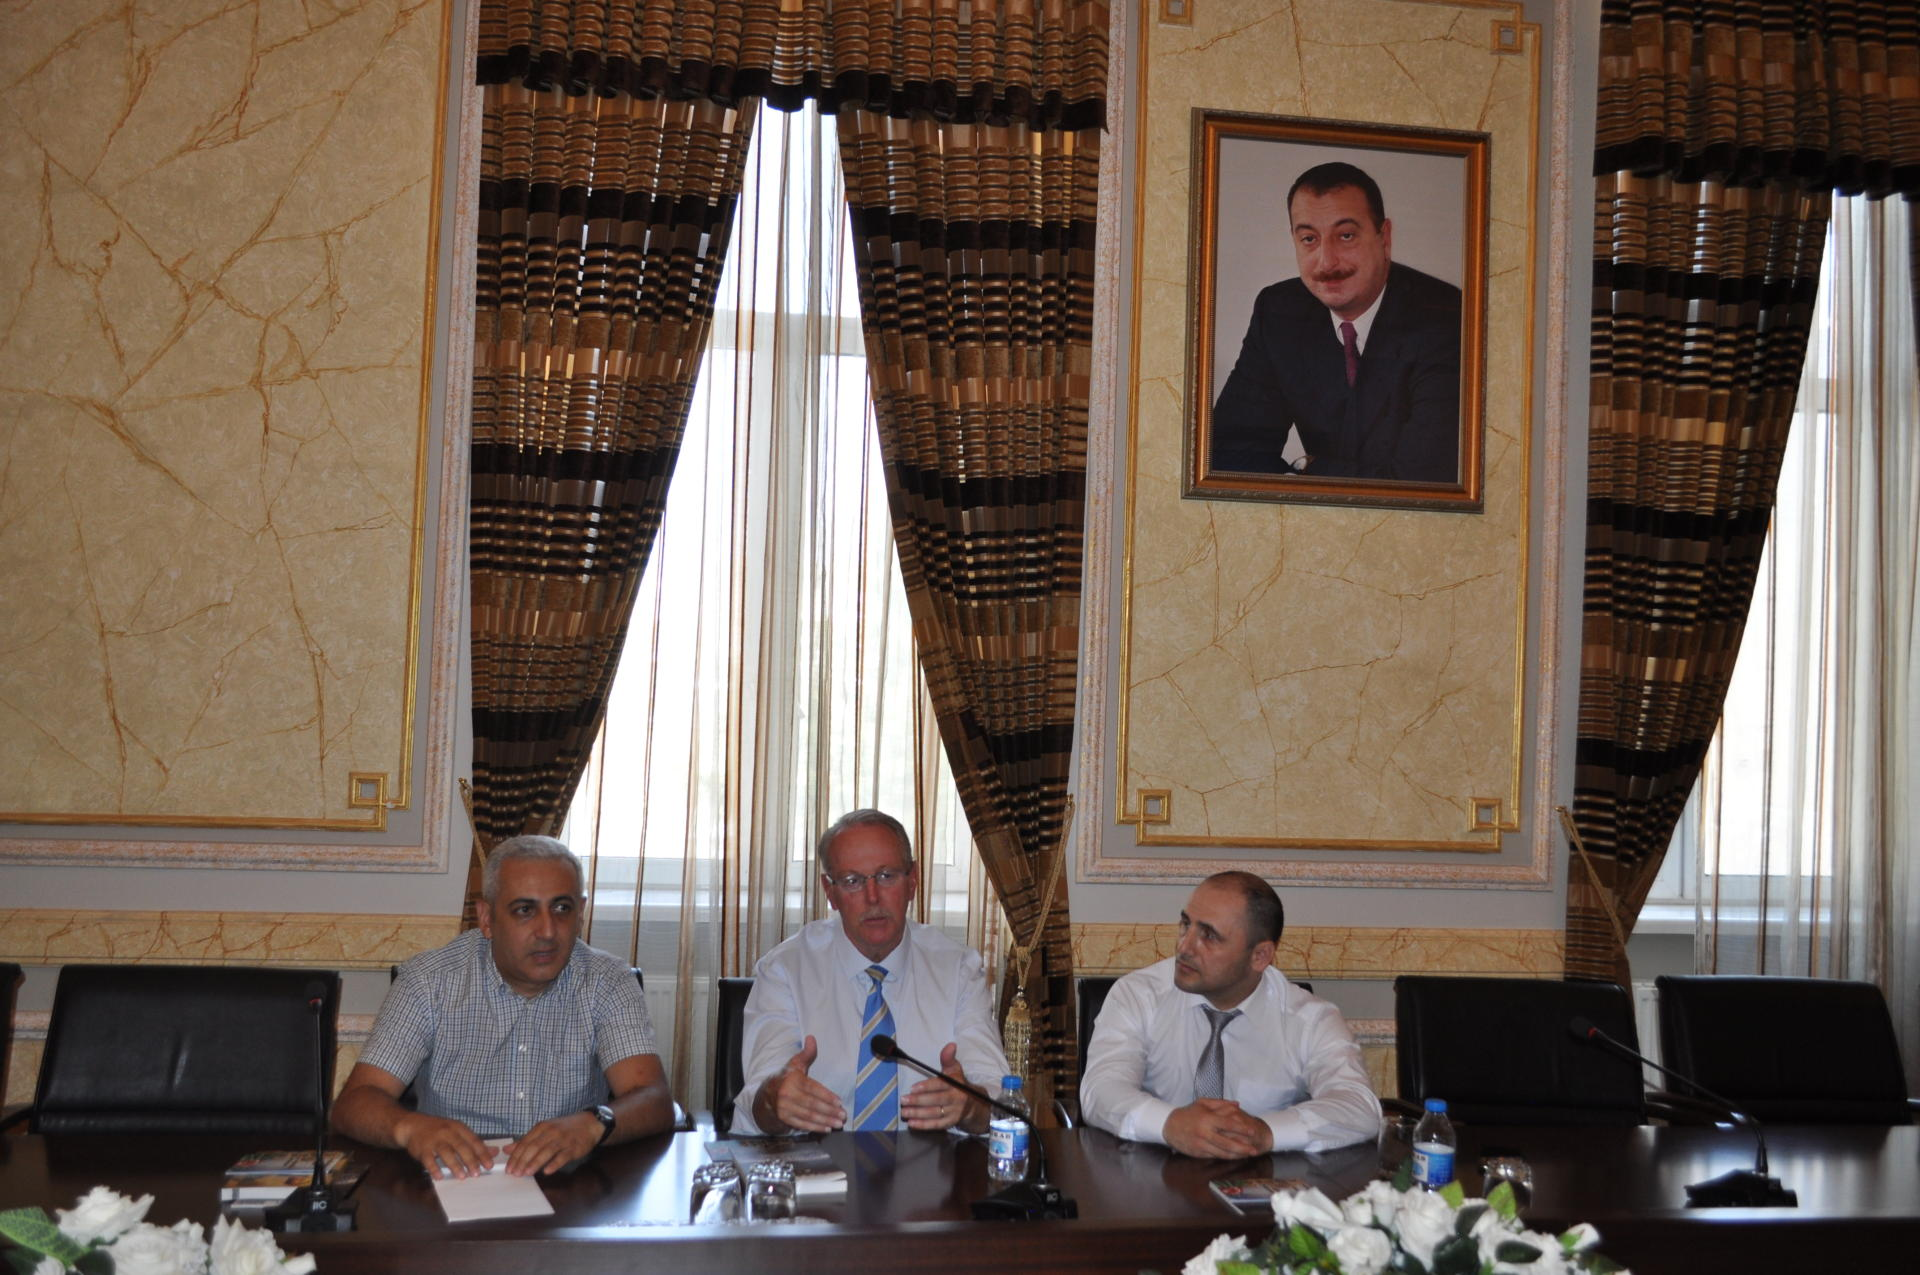 US pastor: Azerbaijan promoting multiculturalism values in world (PHOTO)